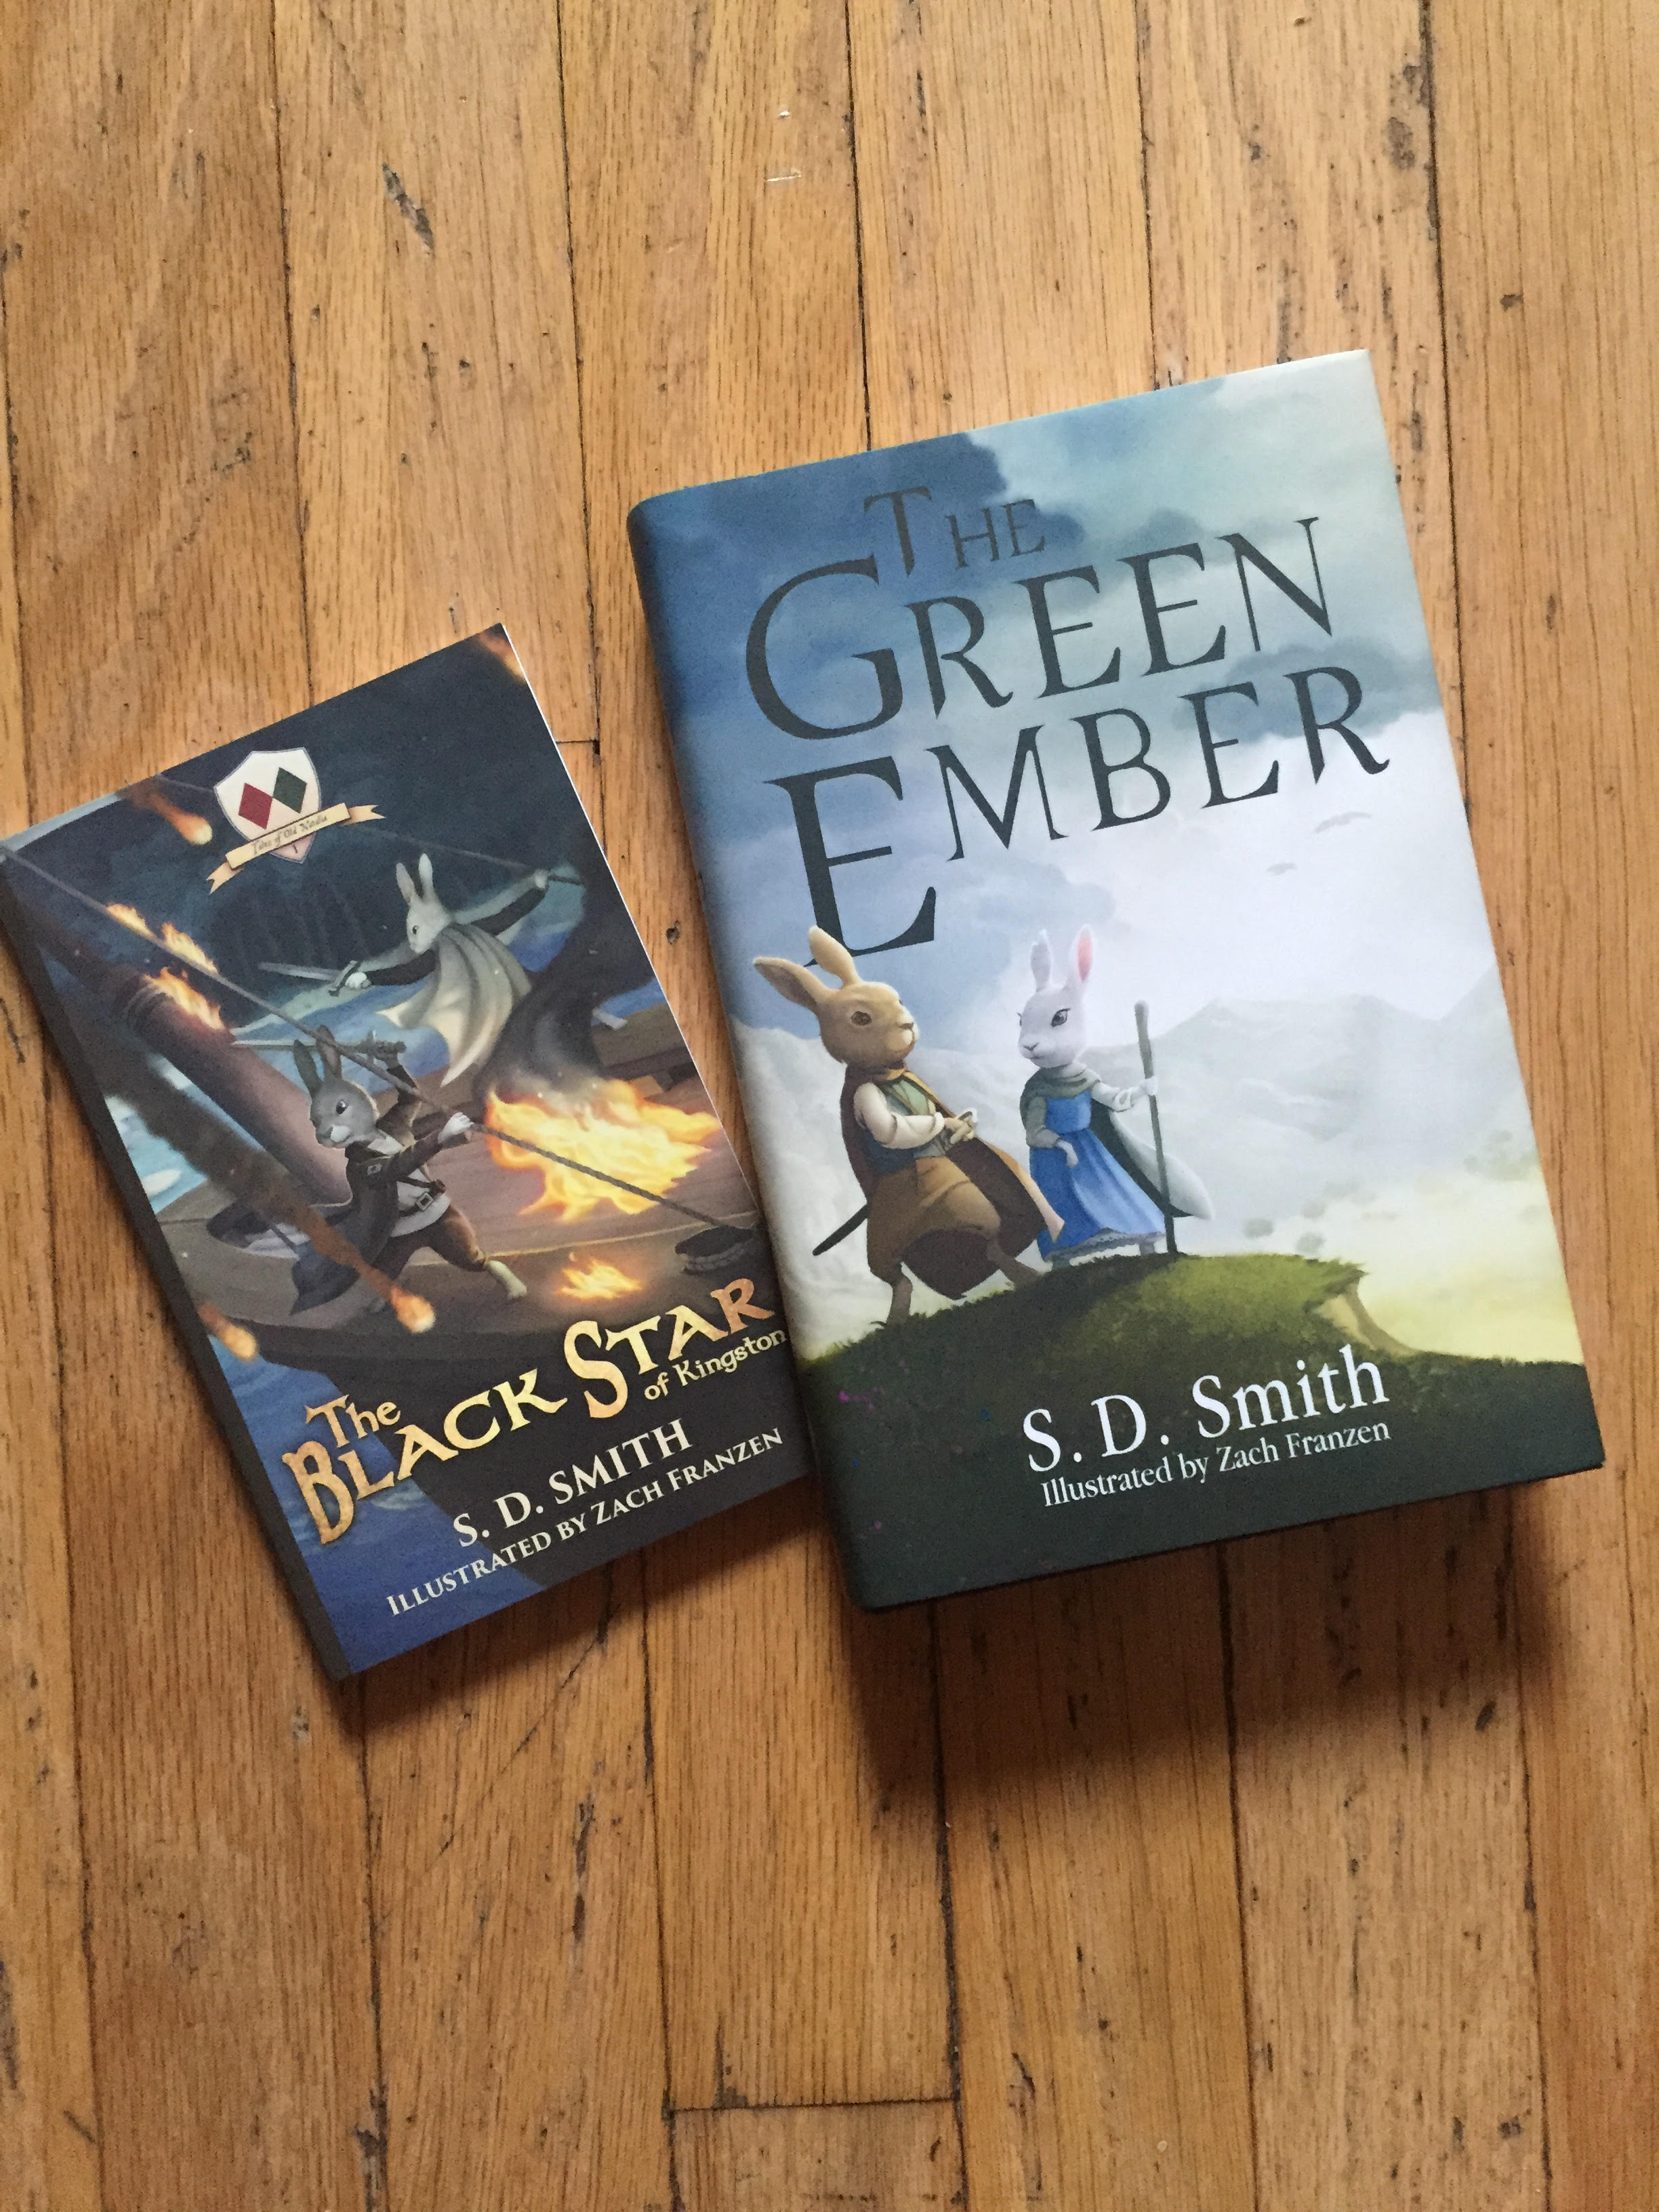 Get the Green Ember audiobook for just $1!